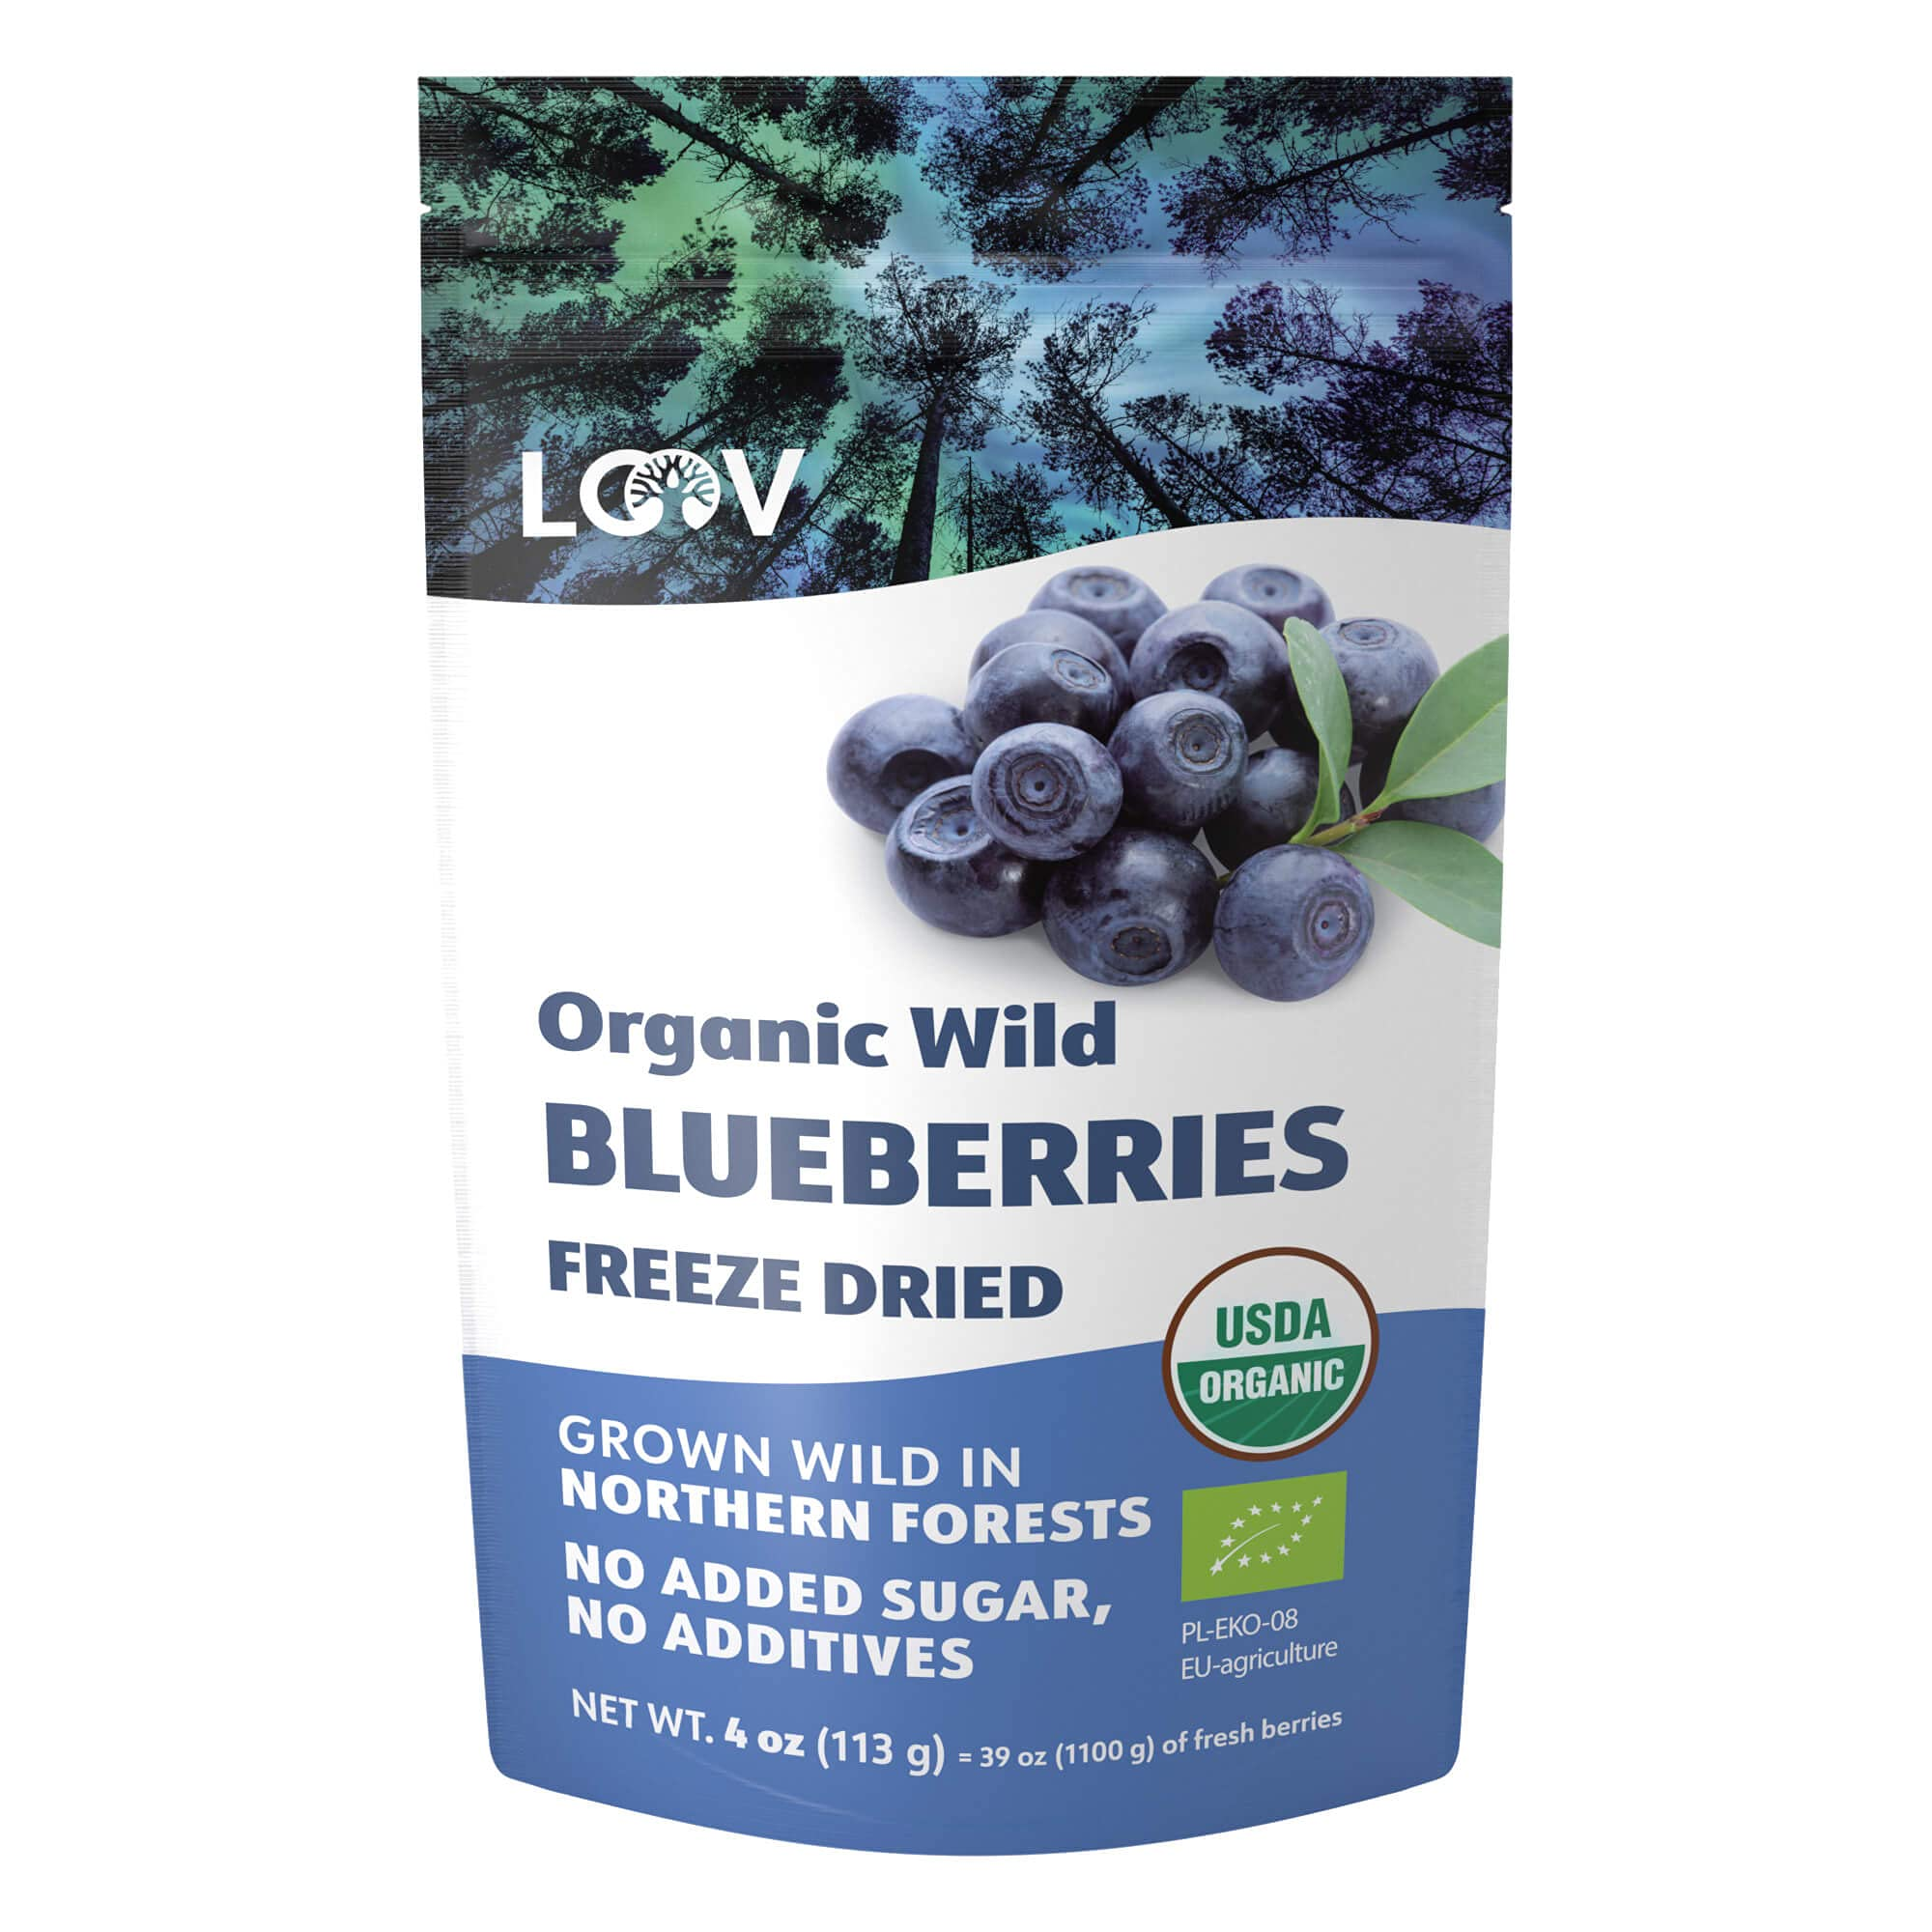 LOOV Wild Organic Dried Blueberries, No Added Sugar, No Added Oil, 113 Grams, Freeze Dried Wild Blueberries From Nordic Forests, 100% Whole Fruit Wild Blueberries, Non-GMO, Unsweetened Dried Fruit